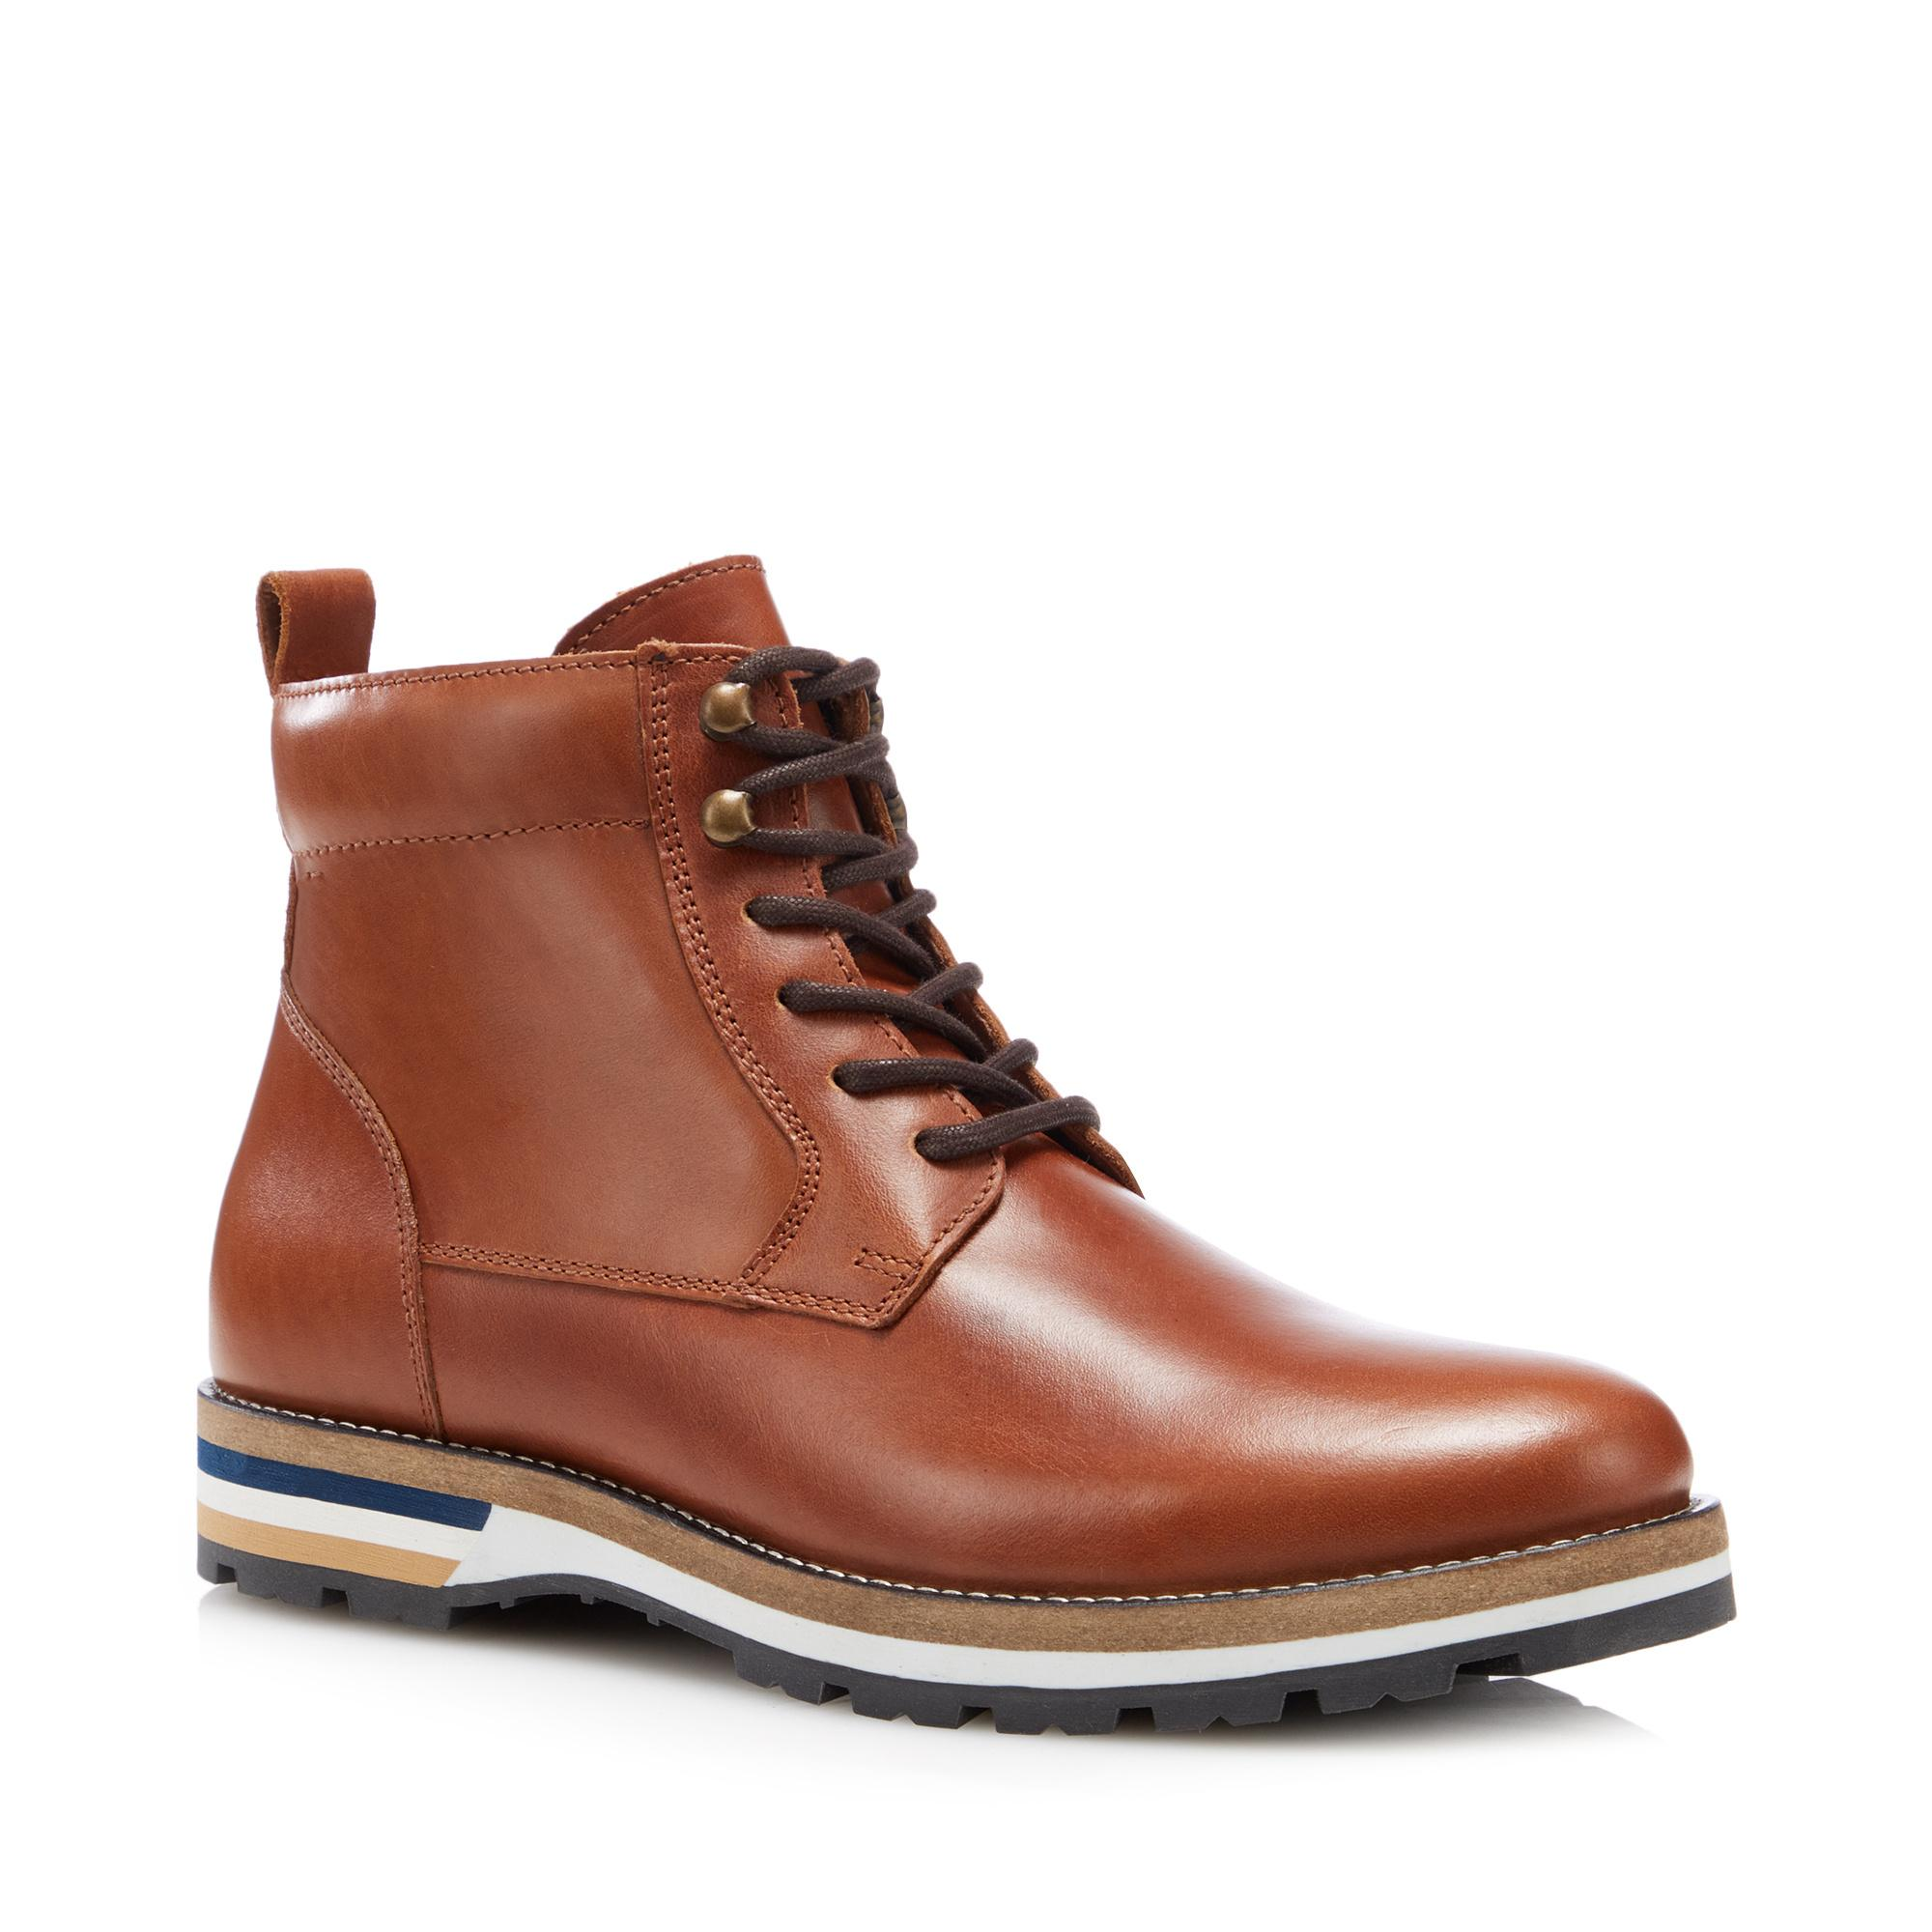 Tan Leather 'Lisbon' Boots by J by